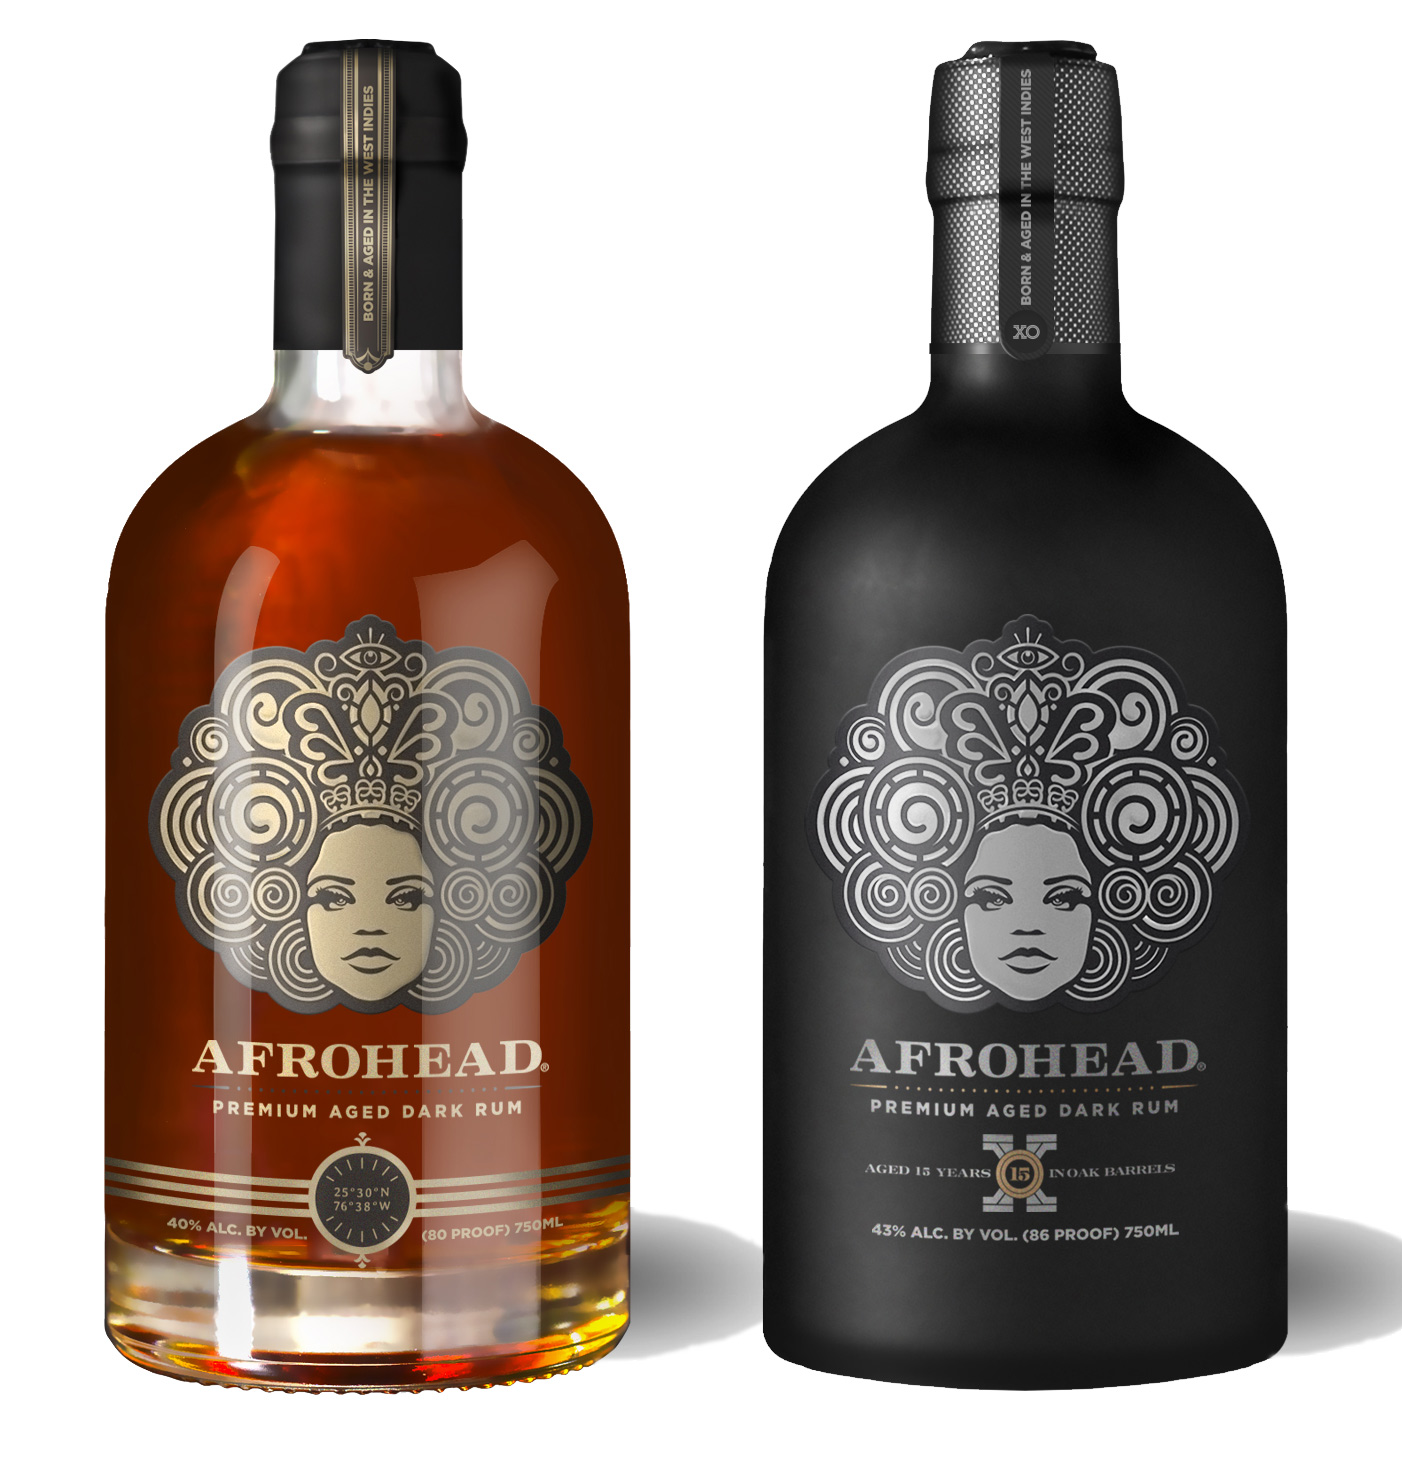 AfroHead, aged rum, Harbour Island, Bahamas